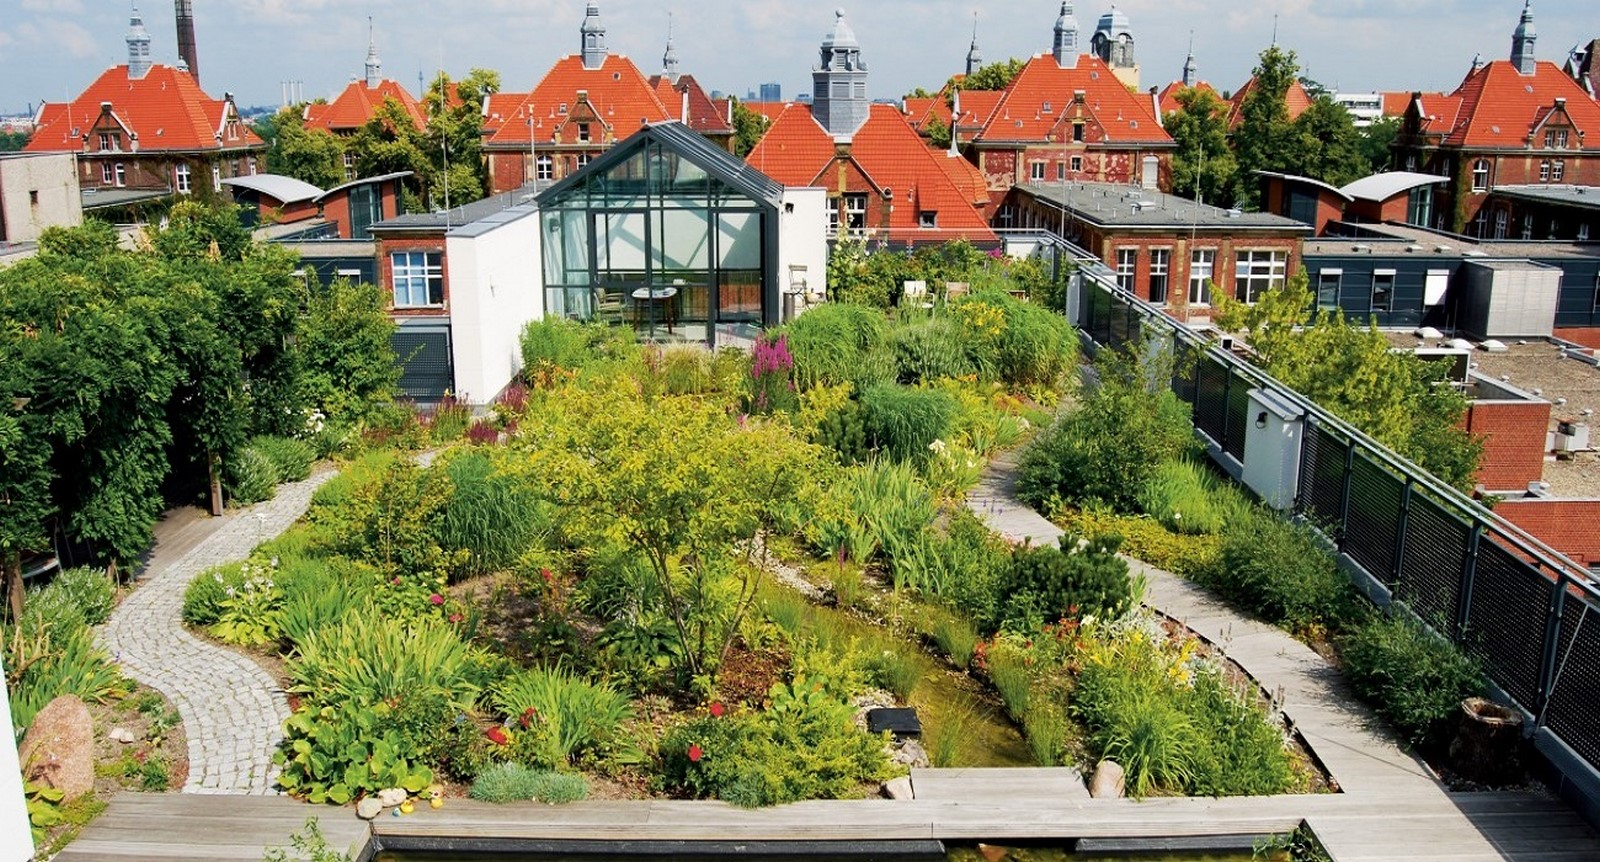 10 things to remember when designing rooftop gardens - Sheet4